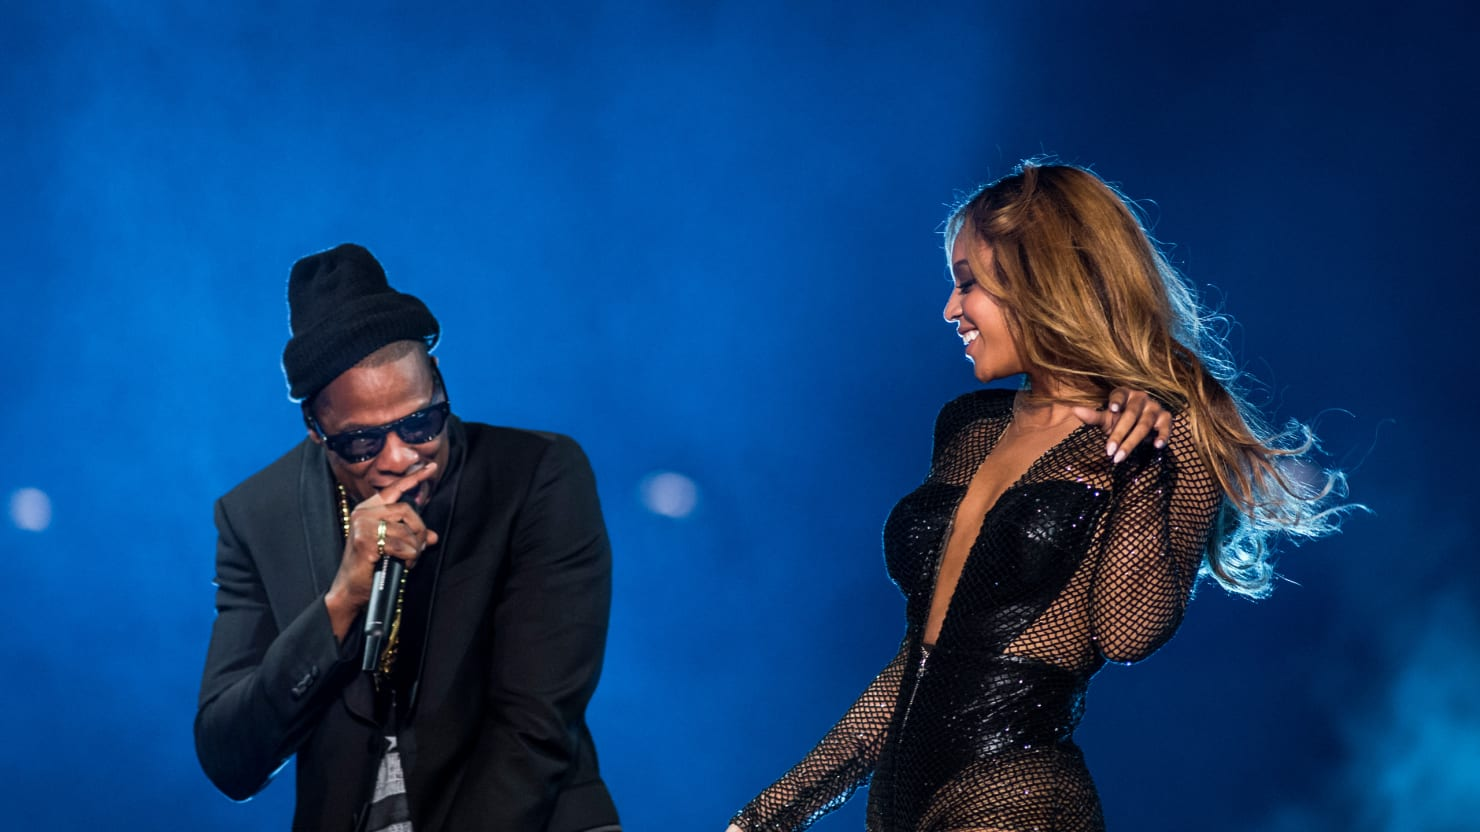 Beyoncé's 'Flawless' Lyrics Tease Her Elevator Drama with Jay Z